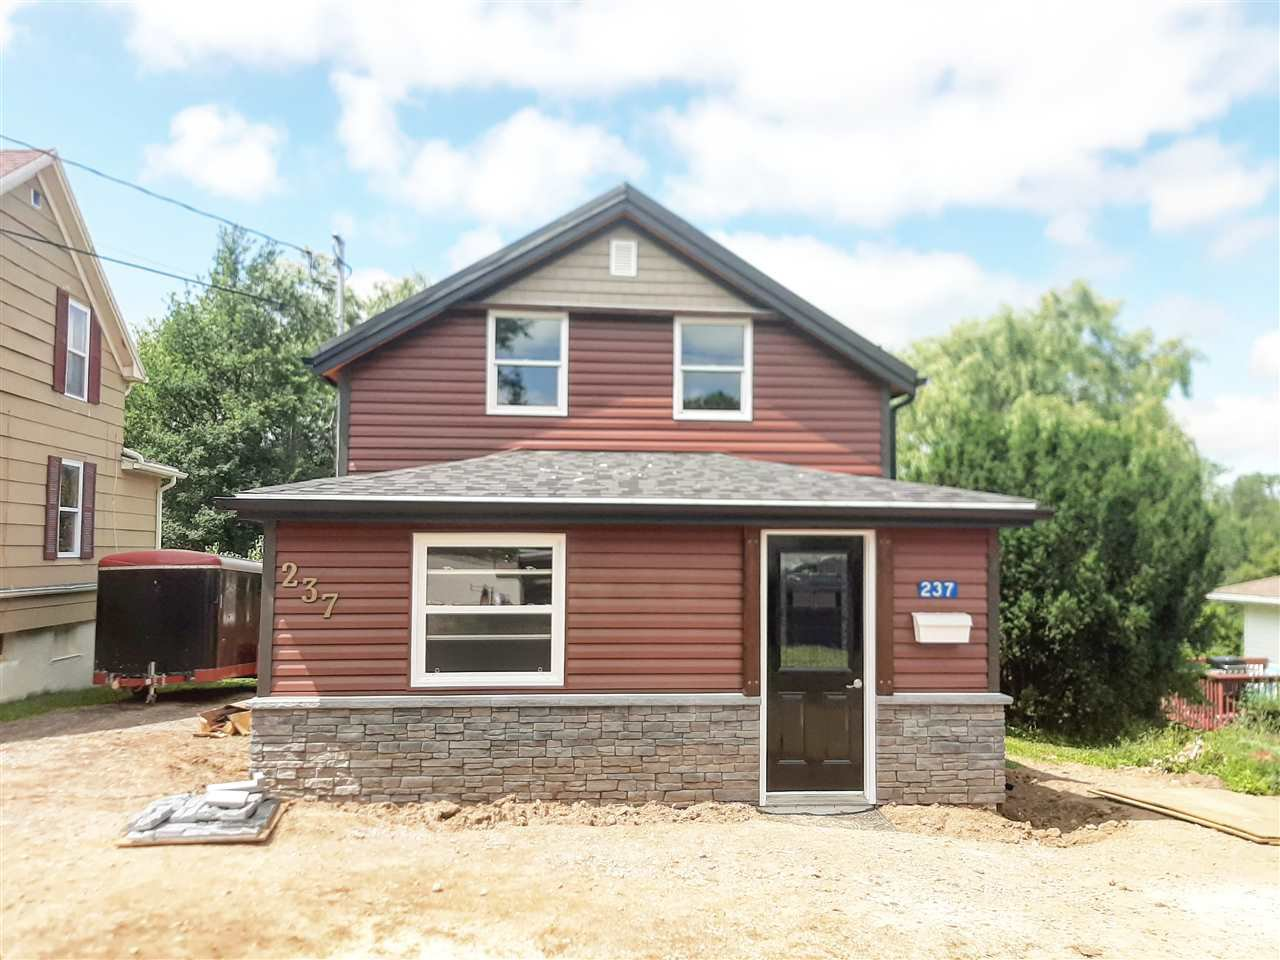 Main Photo: 237 Prospect Avenue in Kentville: 404-Kings County Residential for sale (Annapolis Valley)  : MLS®# 202013756